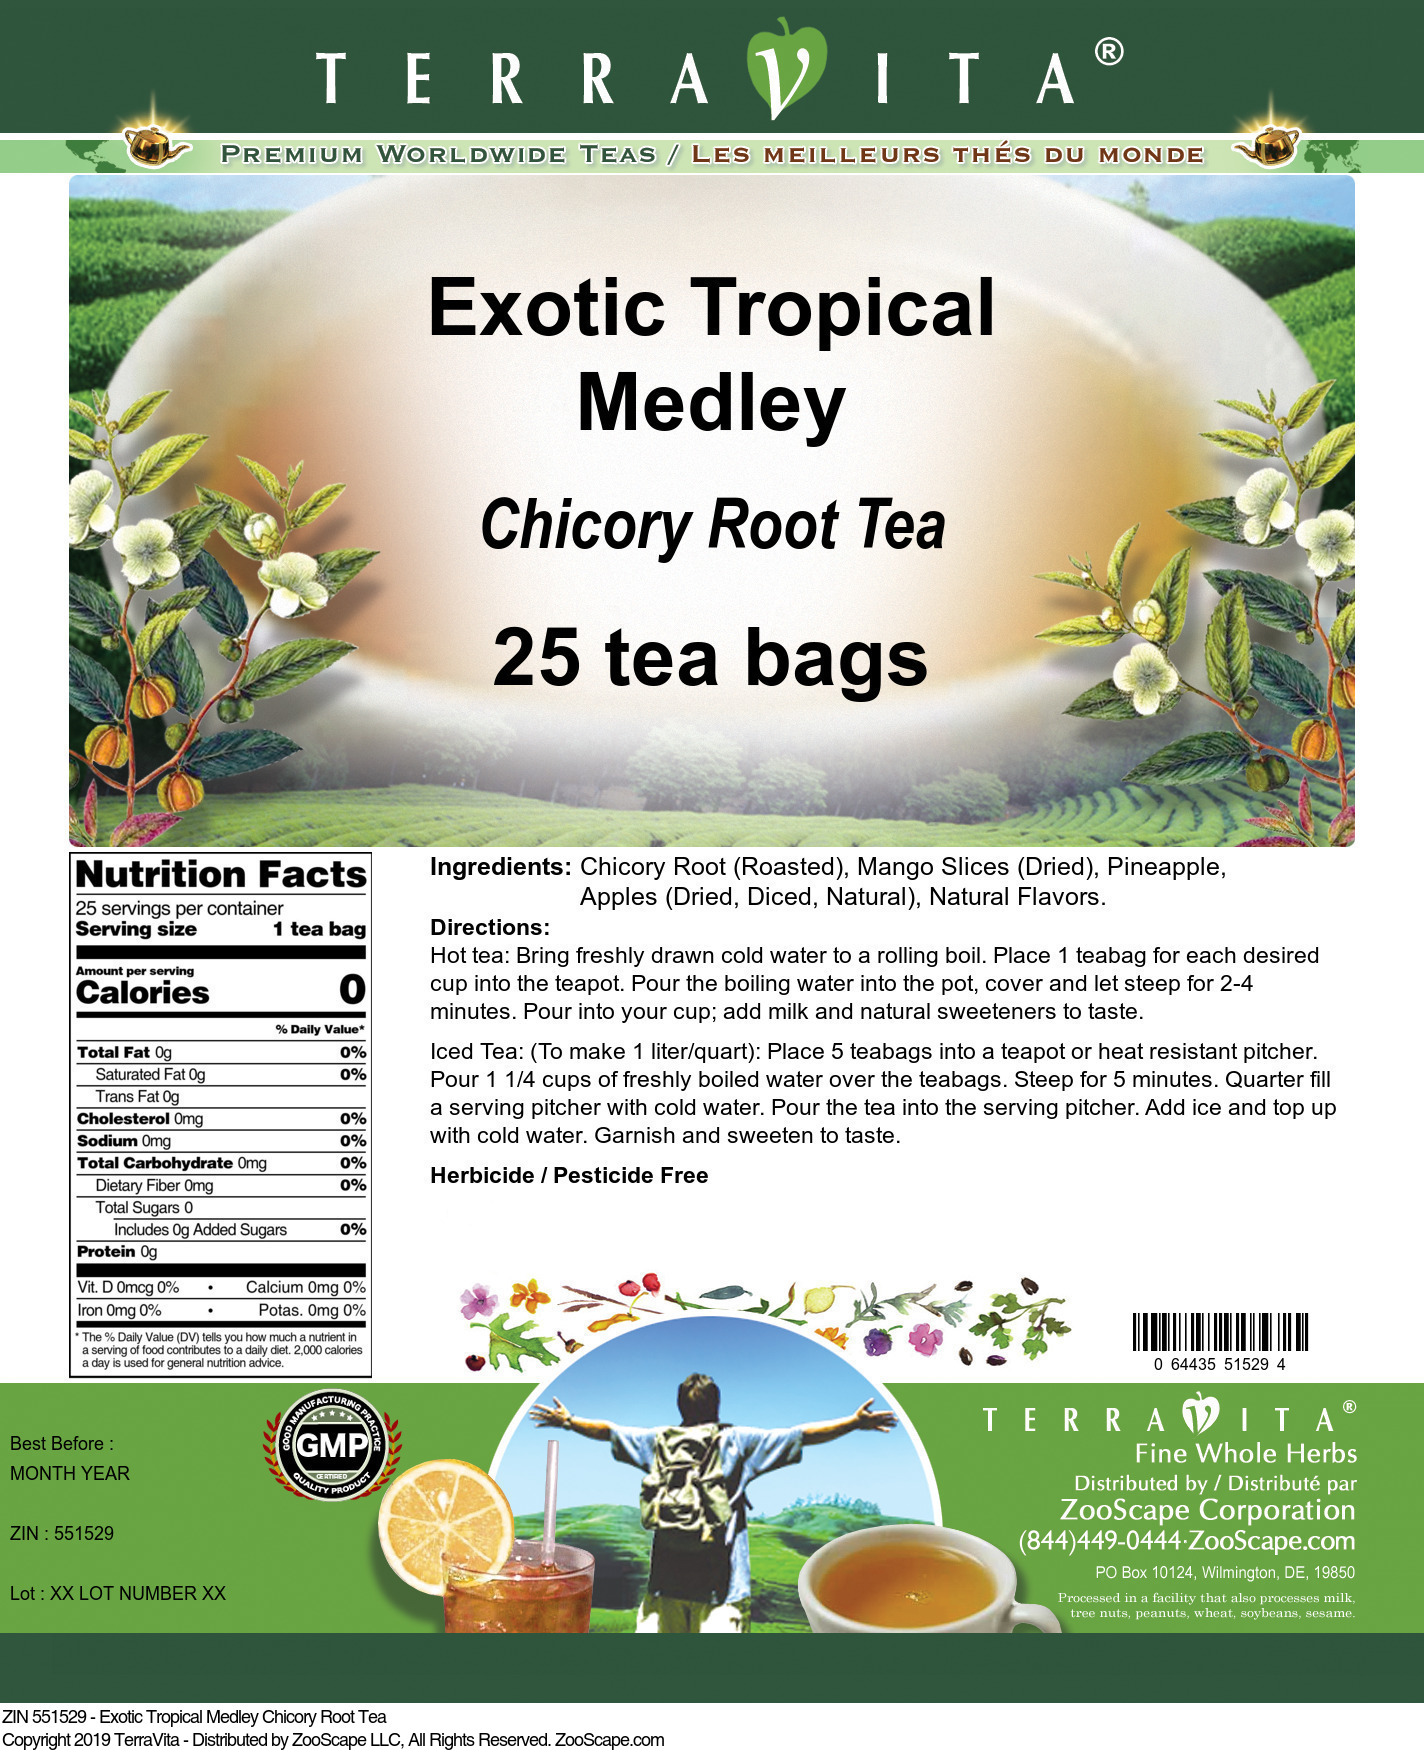 Exotic Tropical Medley Chicory Root